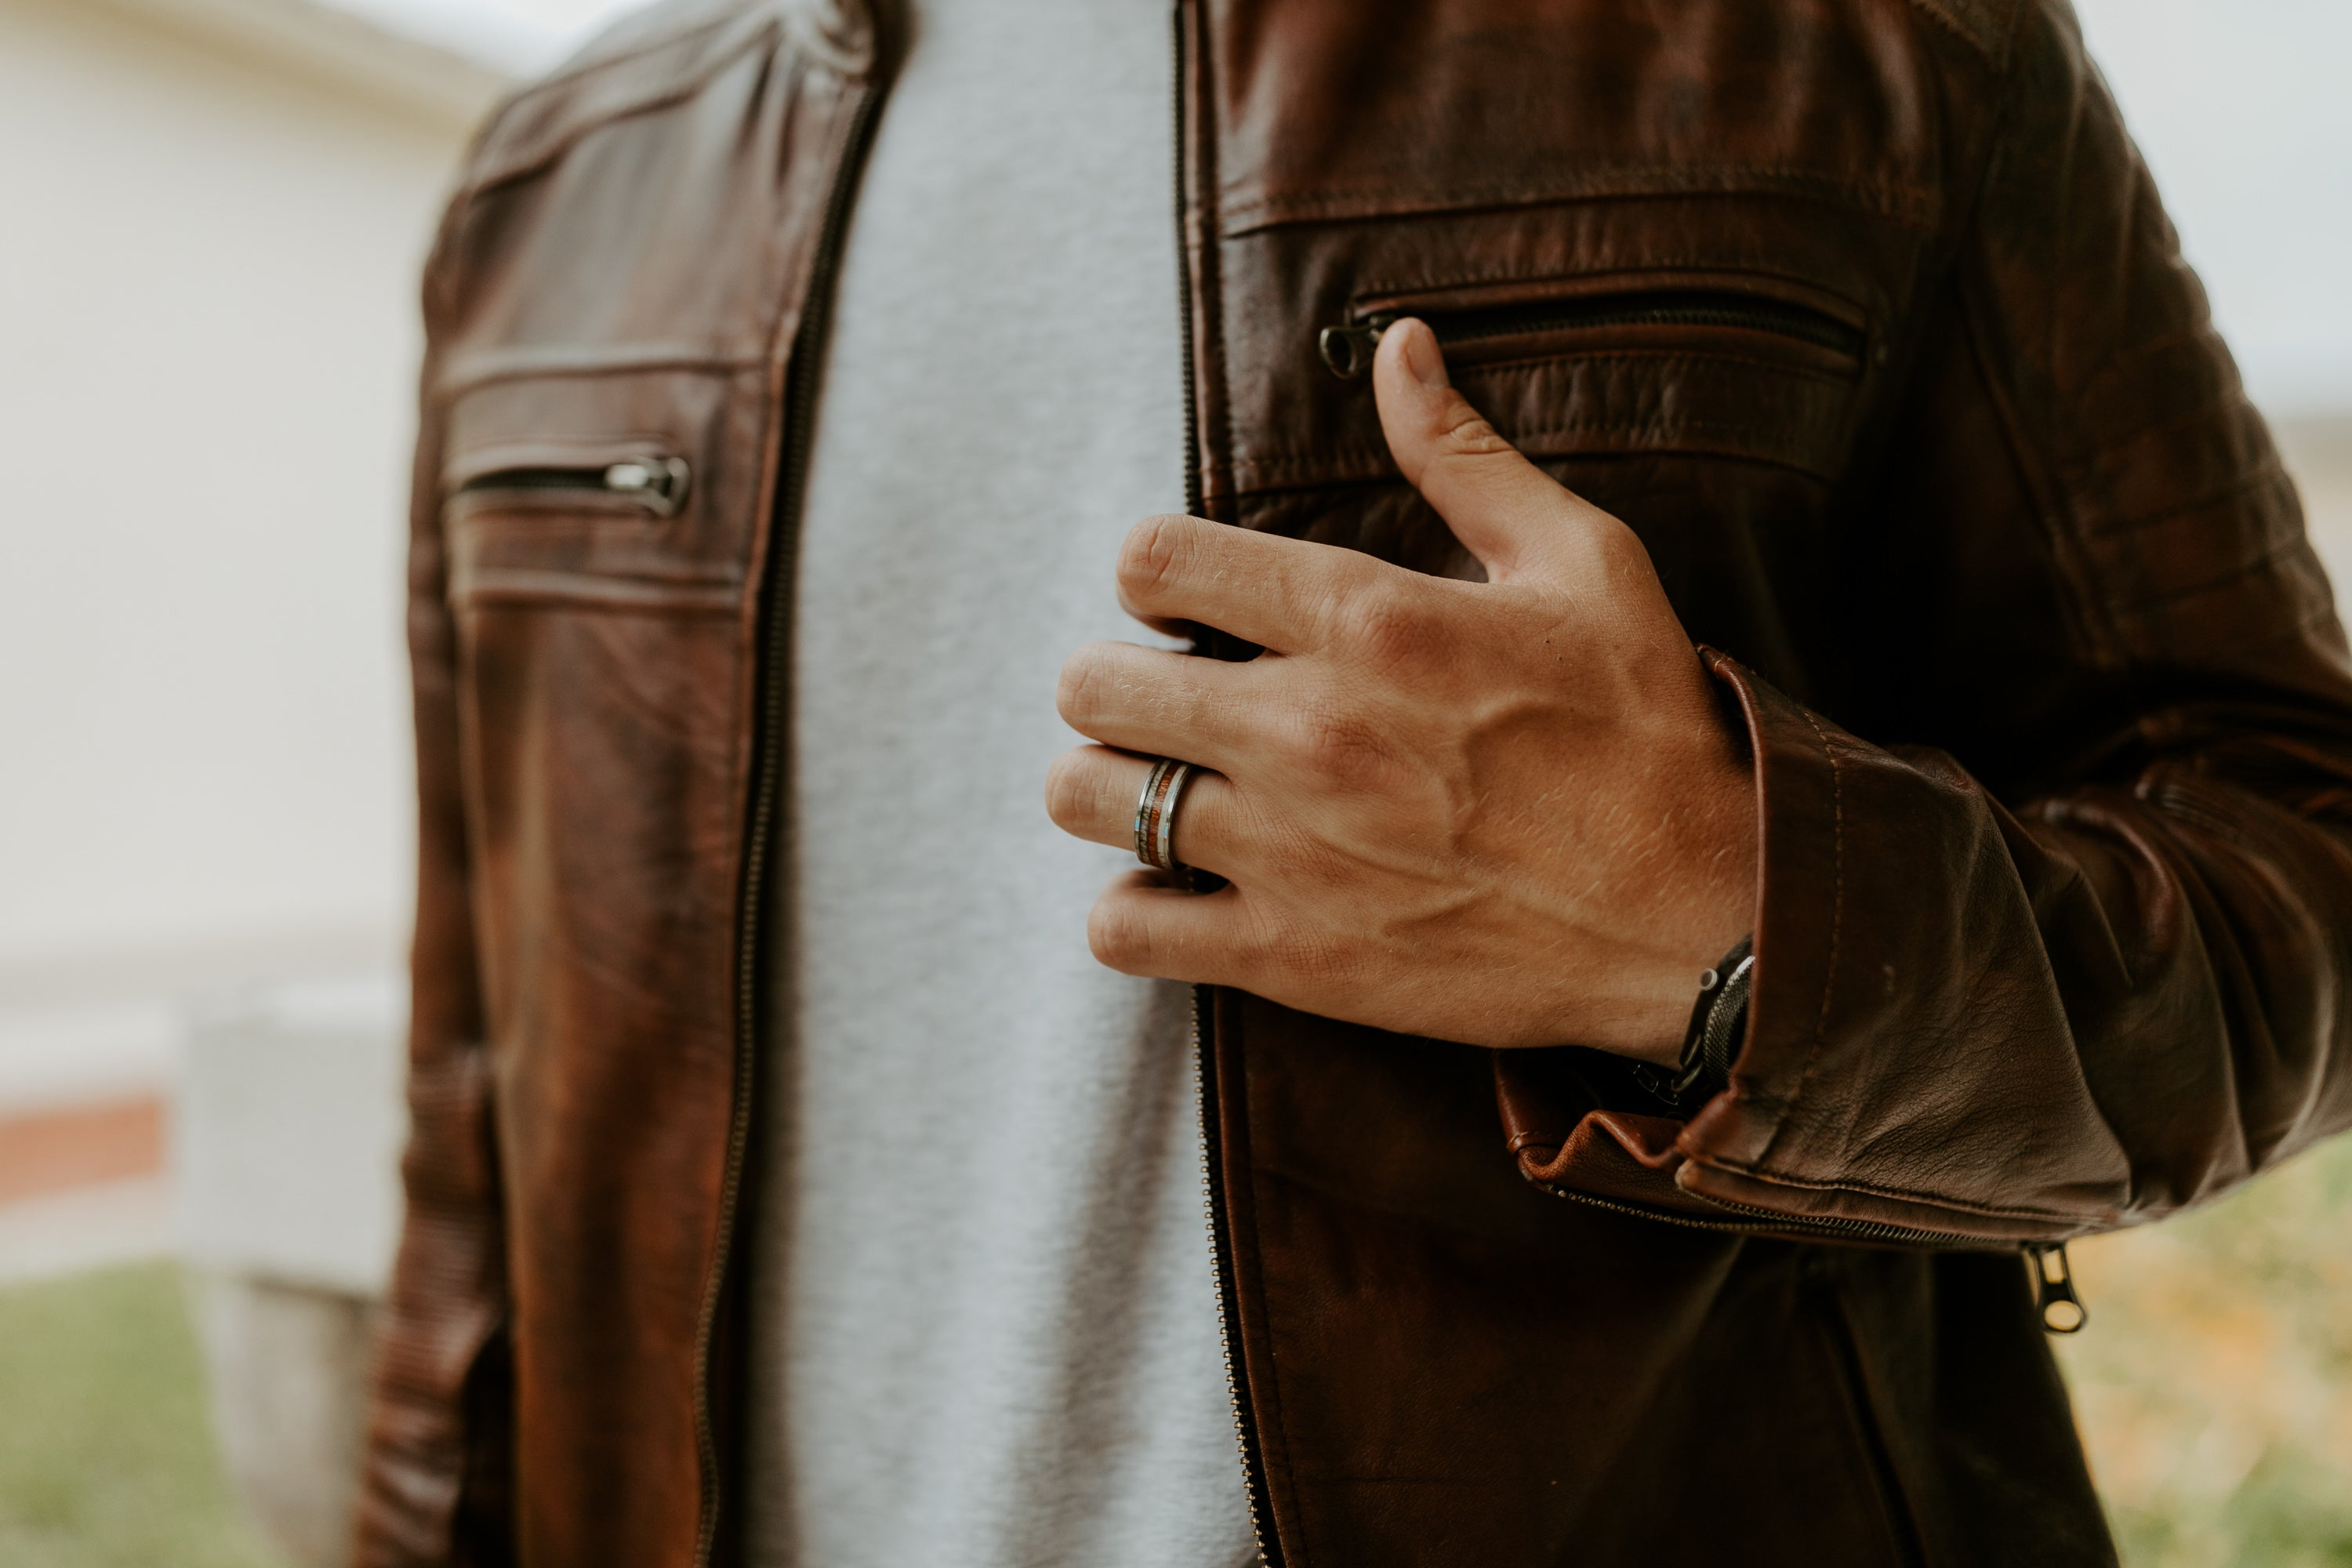 torso-view-of-man-in-leather-jacket-holding-hand-up-to-show-antler-wood-ring